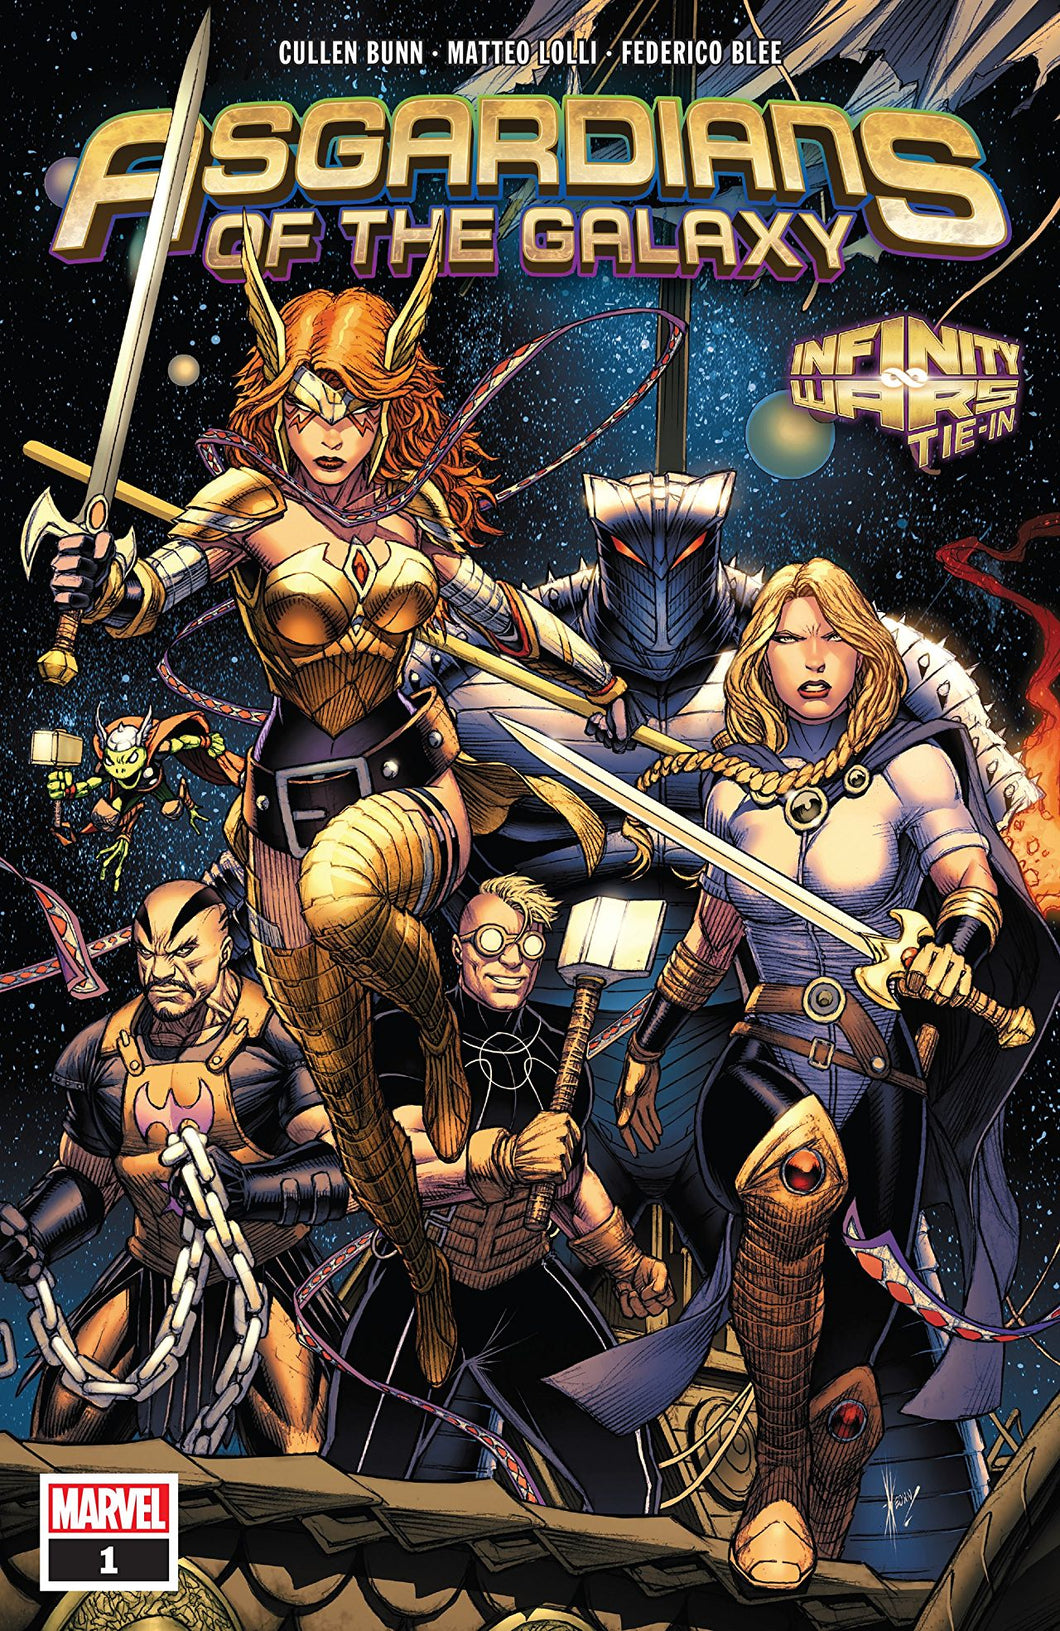 ASGARDIANS OF THE GALAXY #1 (09/05/2018)